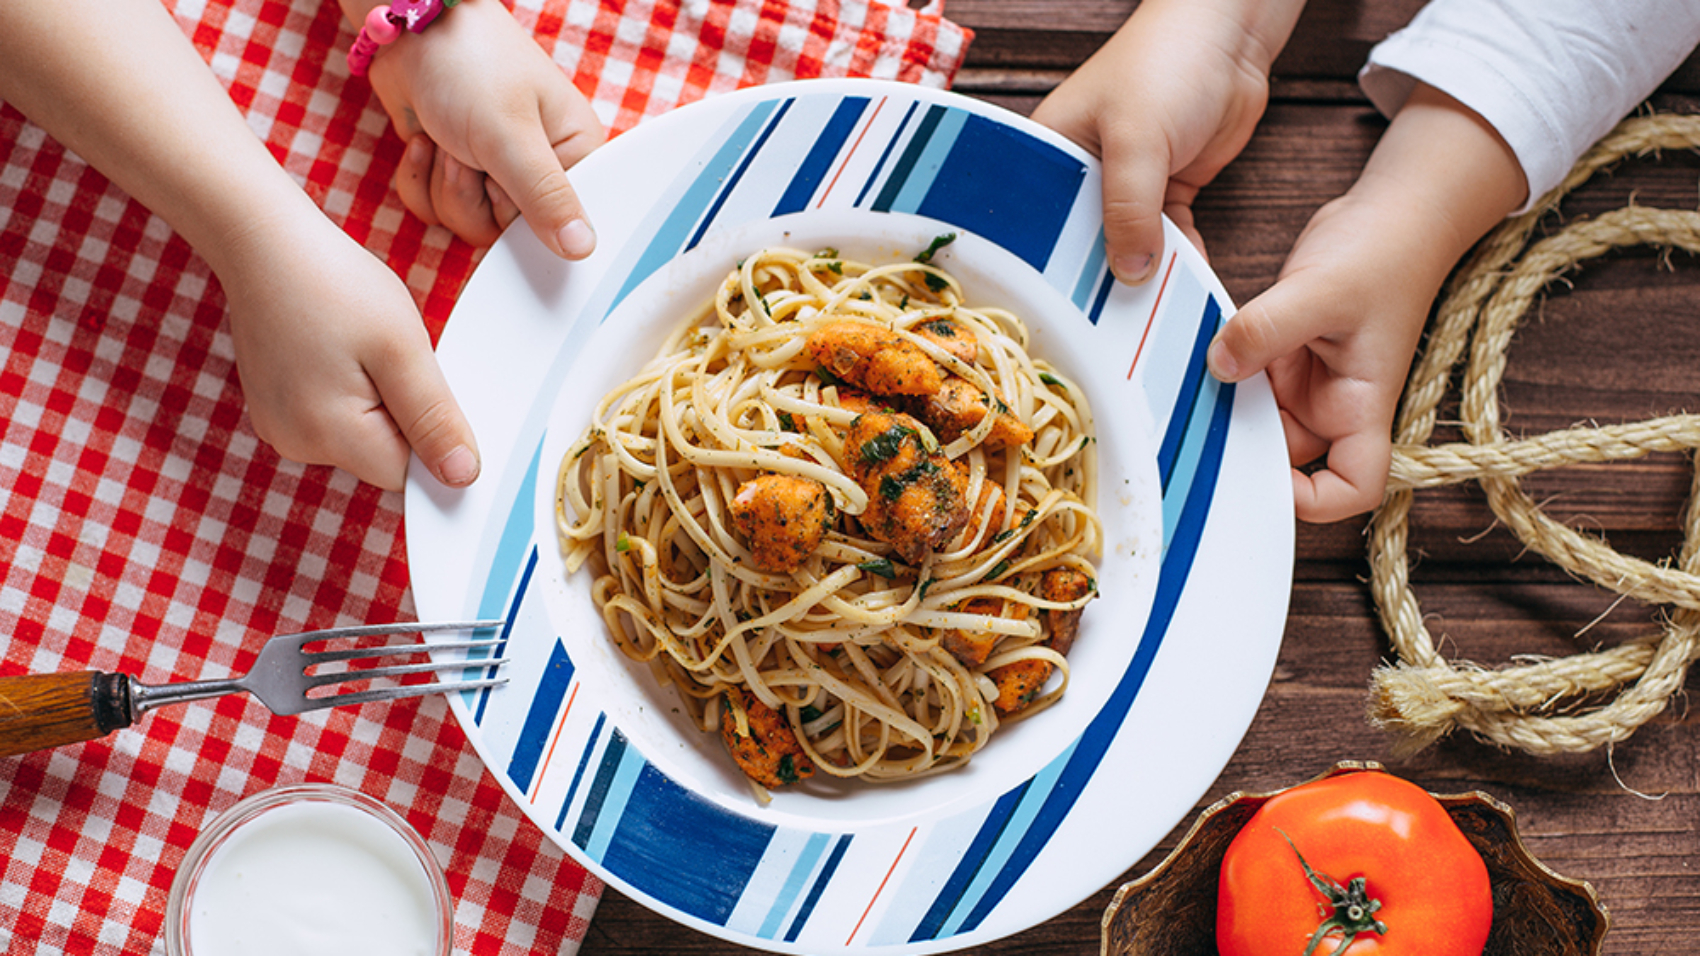 Kids hands and plate with pasta on table , cooking at home with baby top view